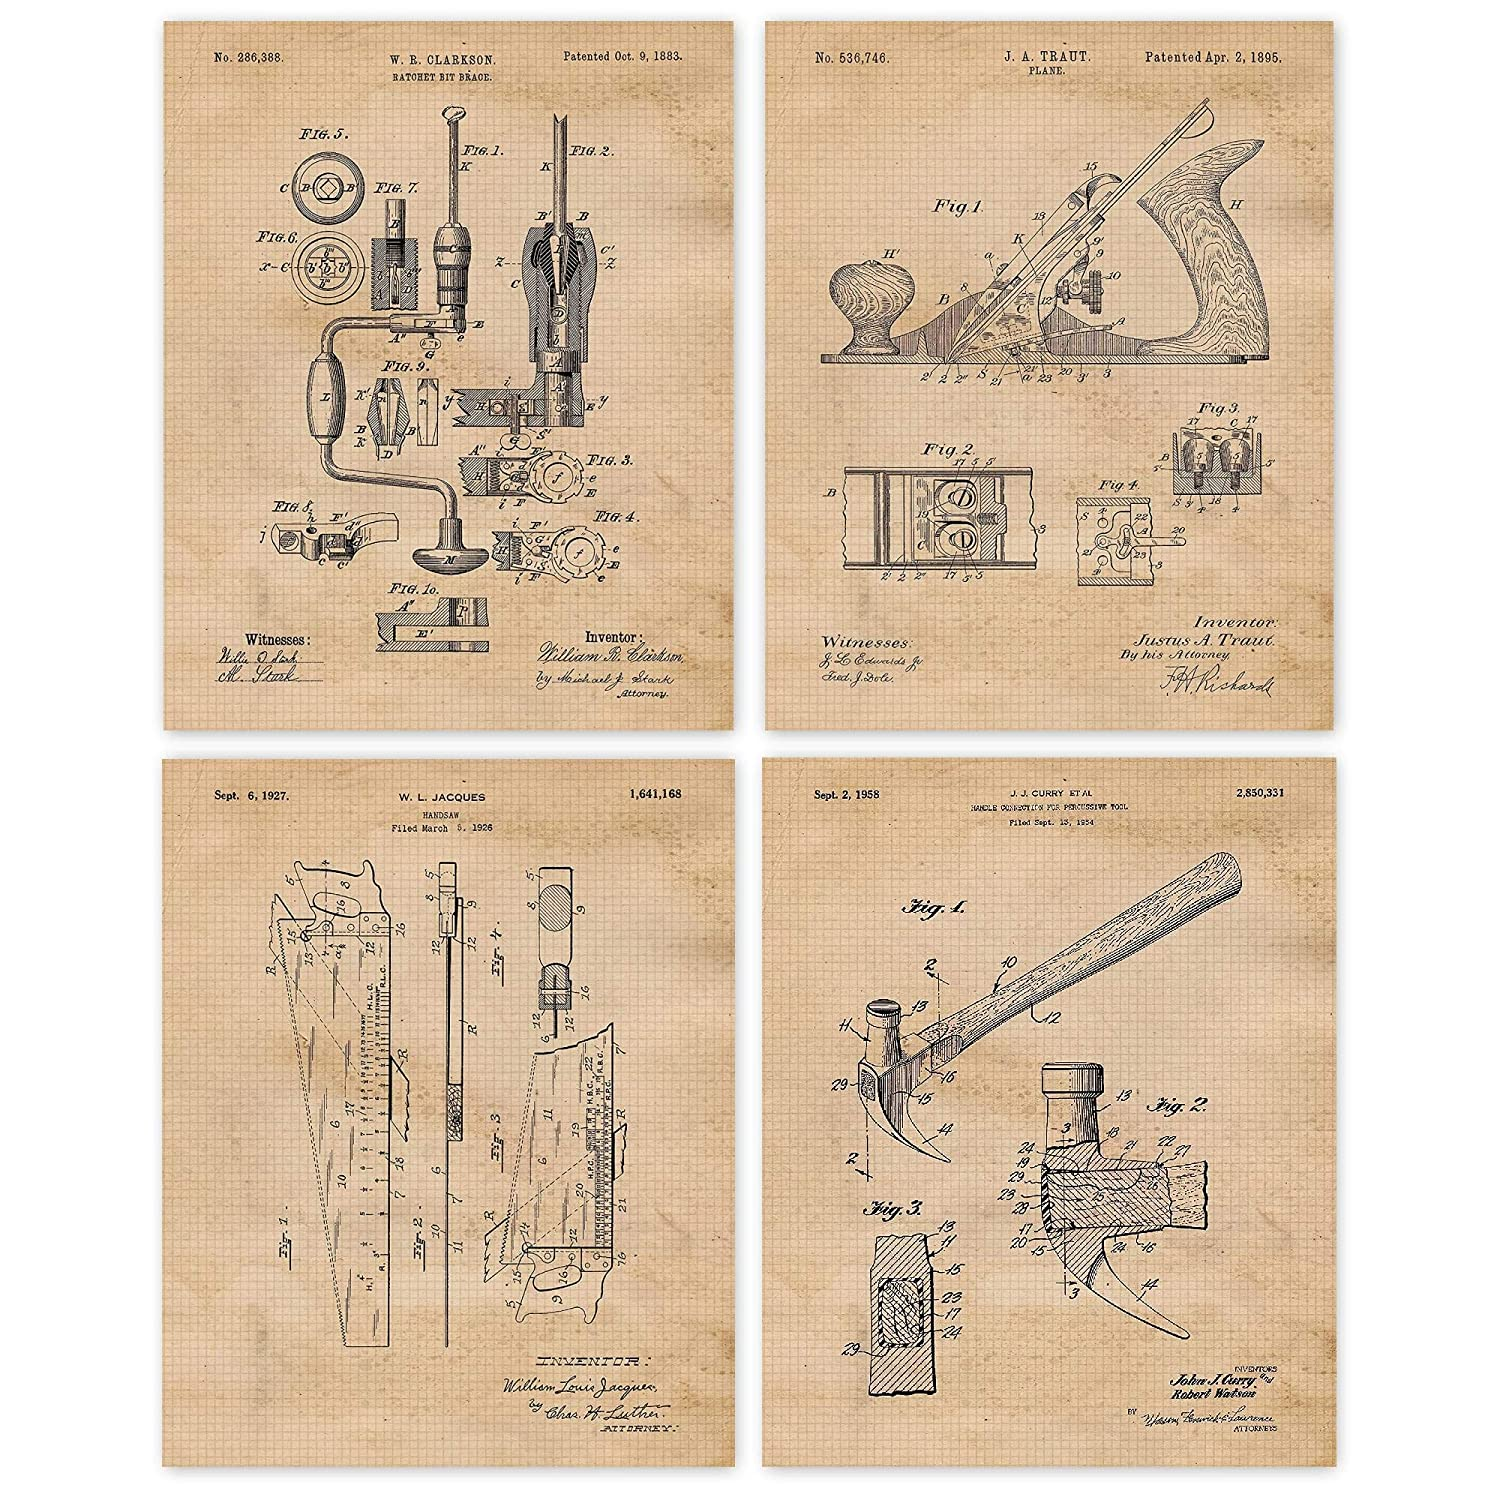 Amazon Com Vintage Woodworking Tools Patent Poster Prints Set Of 4 8x10 Unframed Photos Wall Art Decor Gifts Under 20 For Home Office Garage Man Cave Carpenter College Student Teacher Handmade Fan Handmade